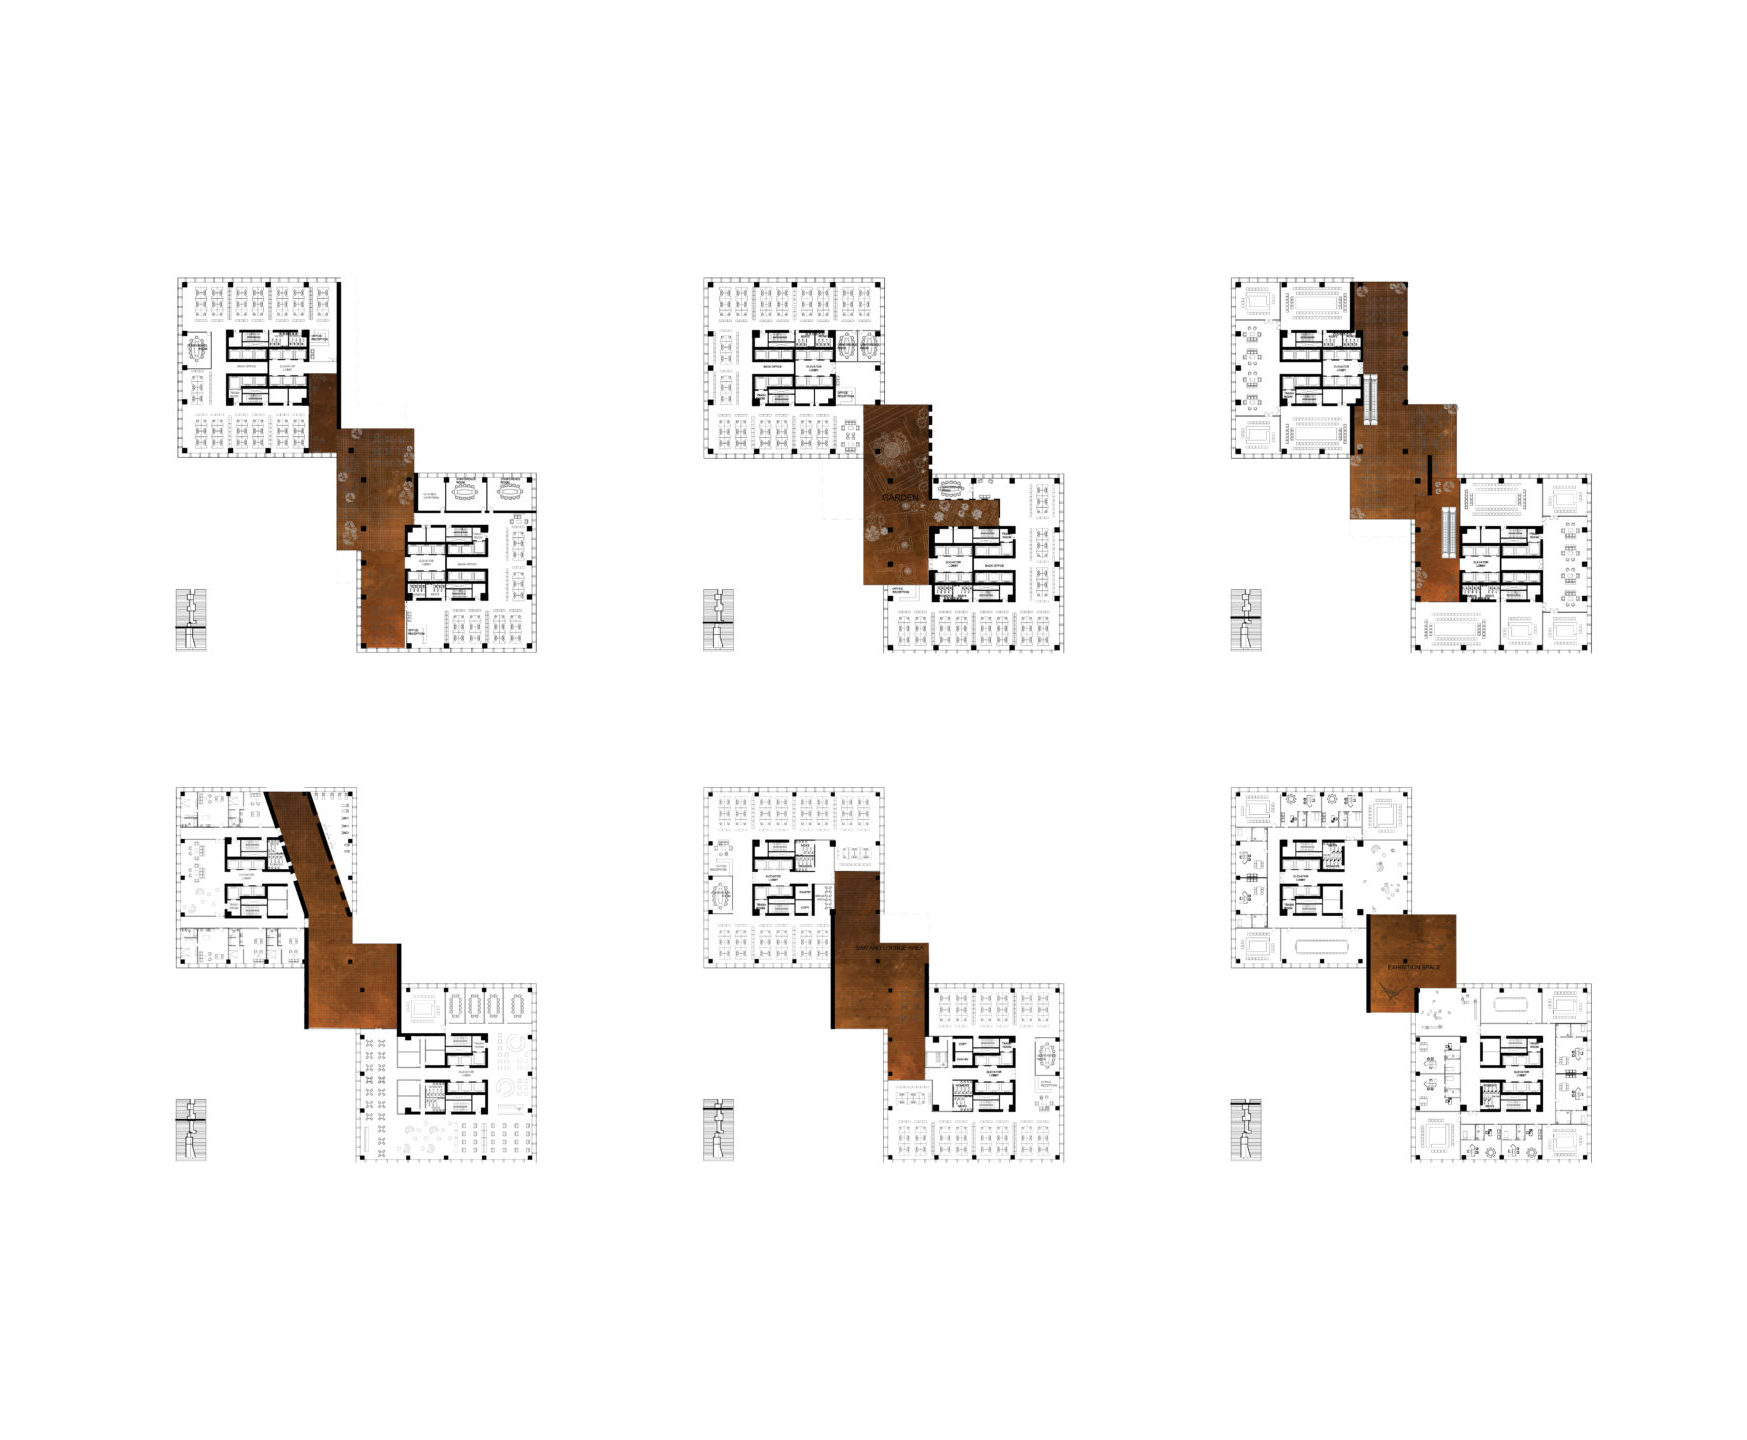 spatial practice architecture office Los Angeles Hong Kong ecospine twin towers cbd beijing china plans flexible spaces